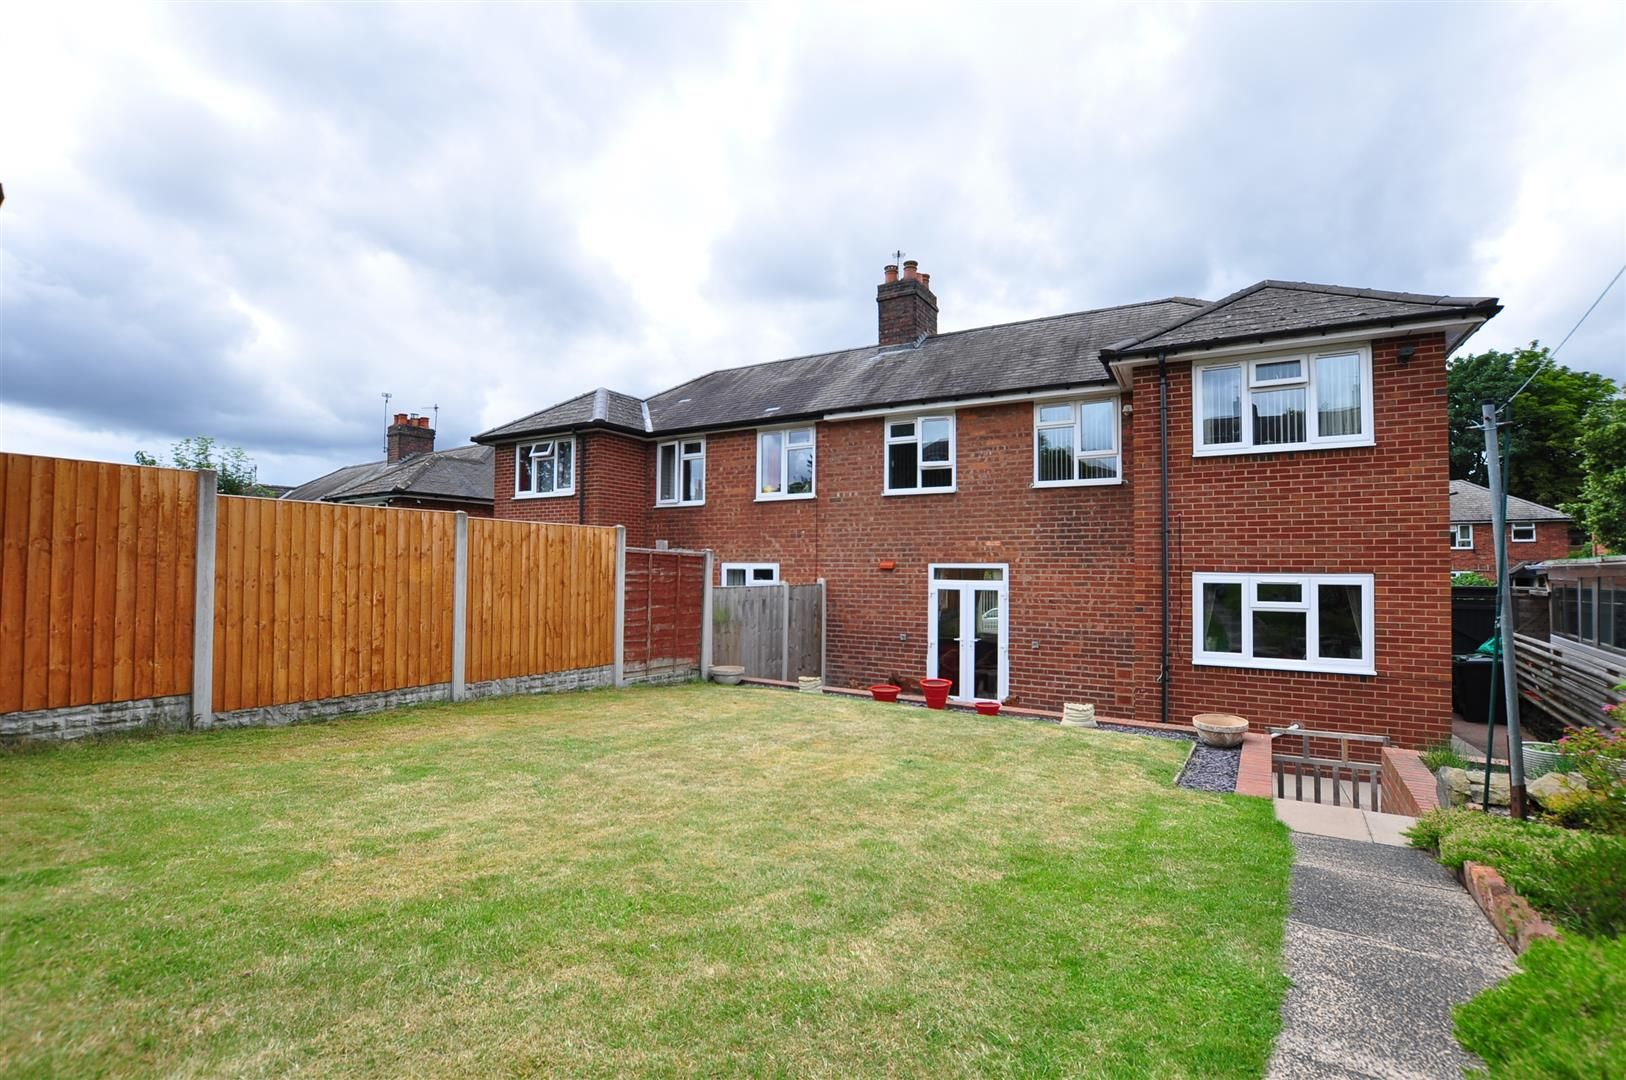 3 bed semi-detached for sale in Lower Gornal  - Property Image 18